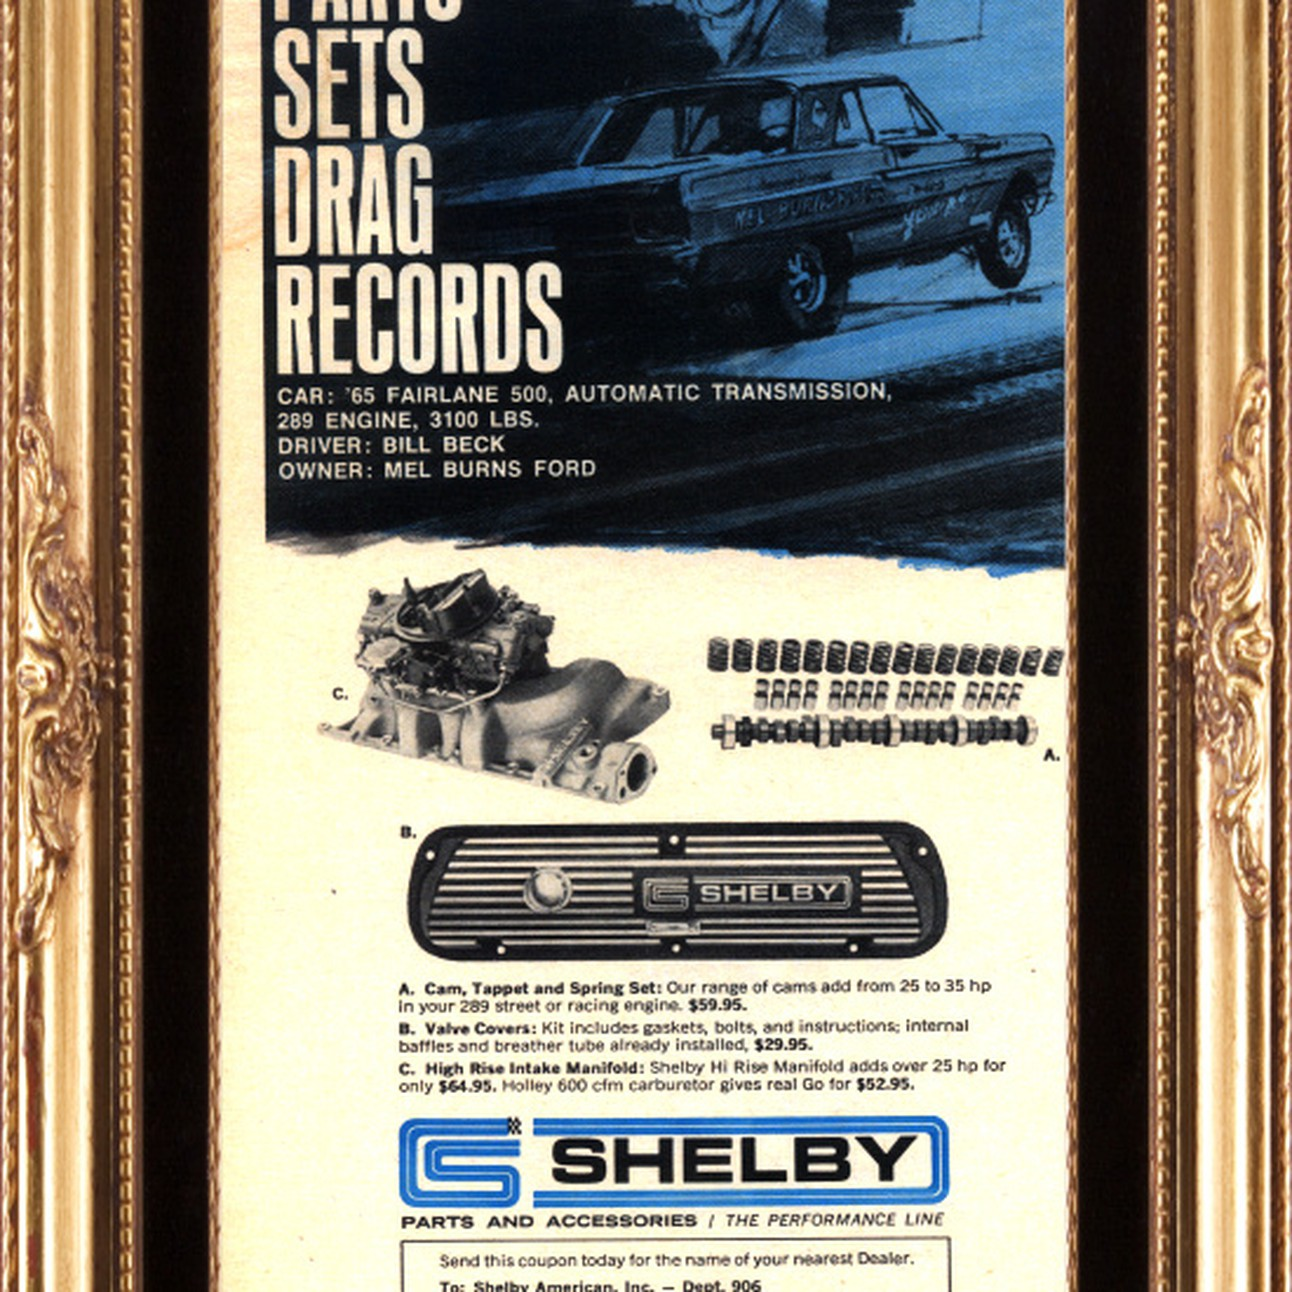 1967 Ford Shelby Cobra Parts Fairlane BIll Beck Mel Burns Vintage Ad